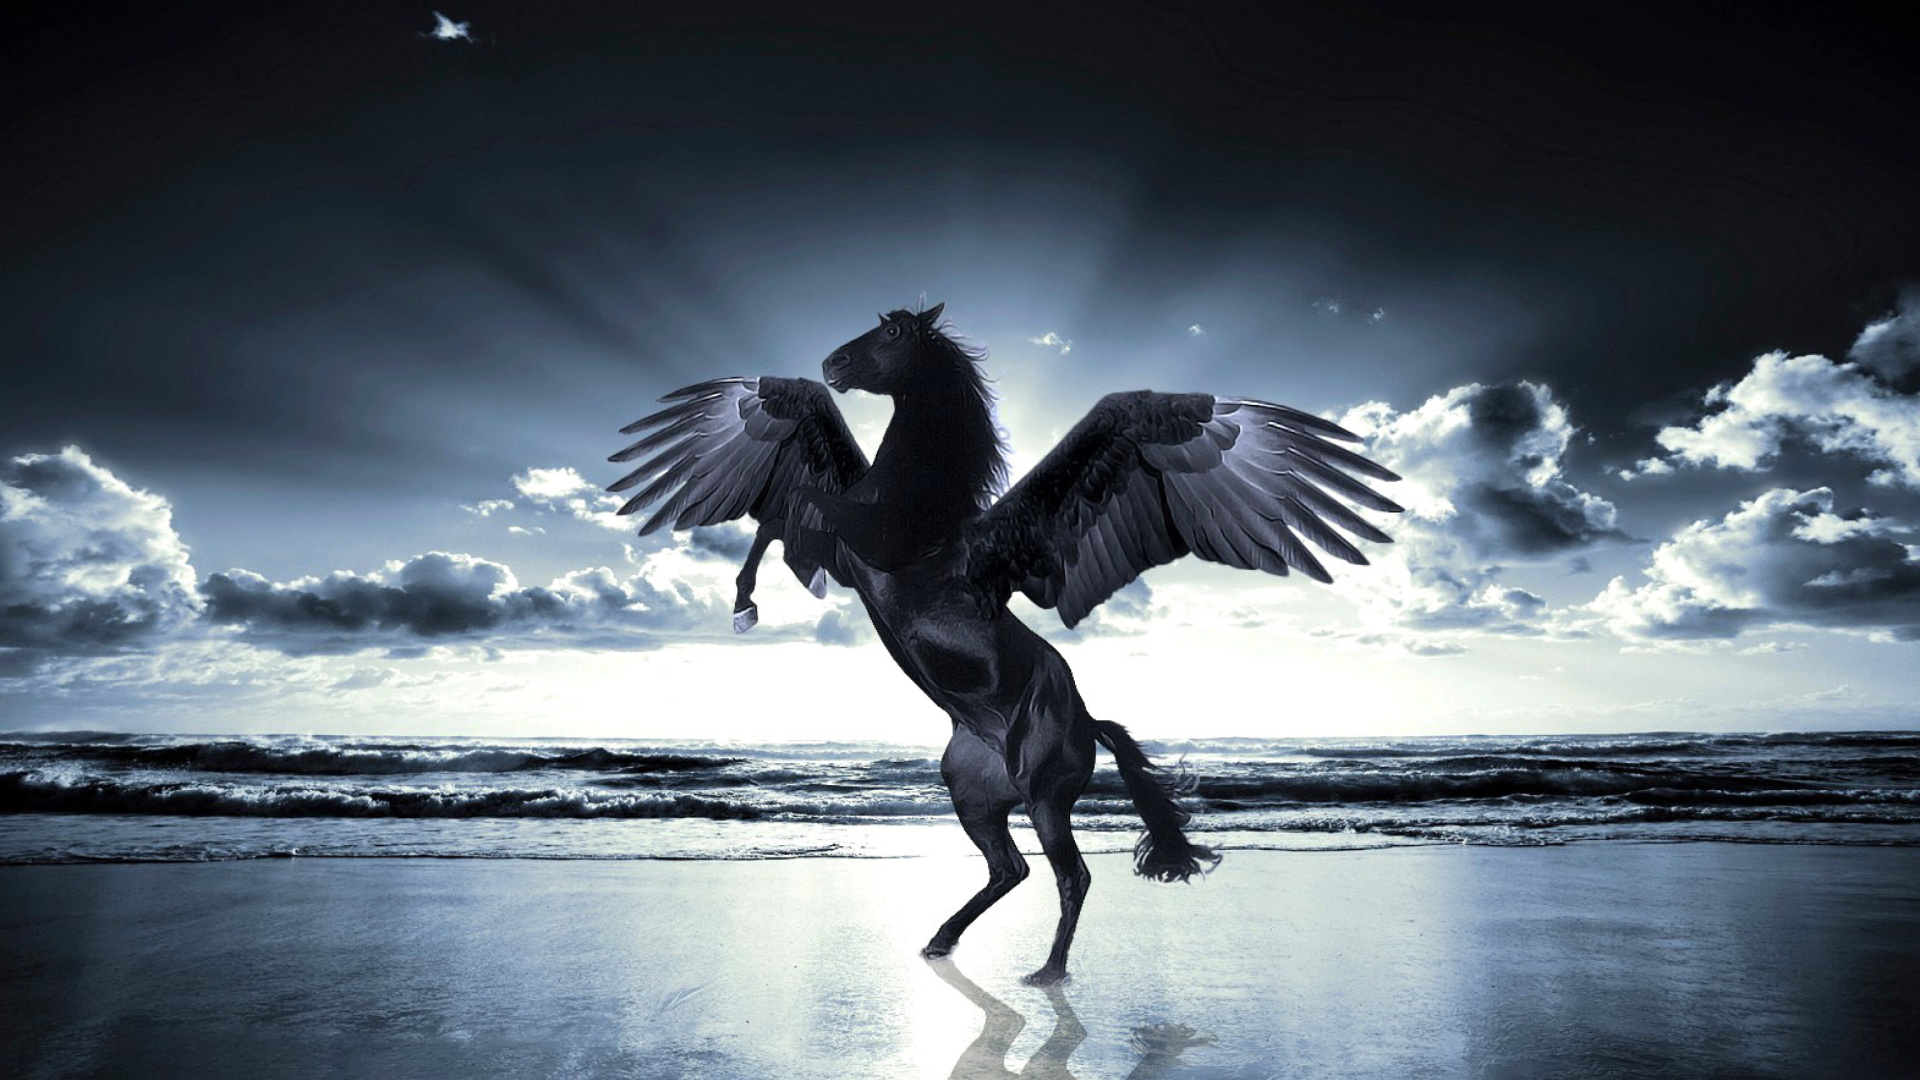 Pegasus Wallpaper For Desktop 1920x1080 Full Hd